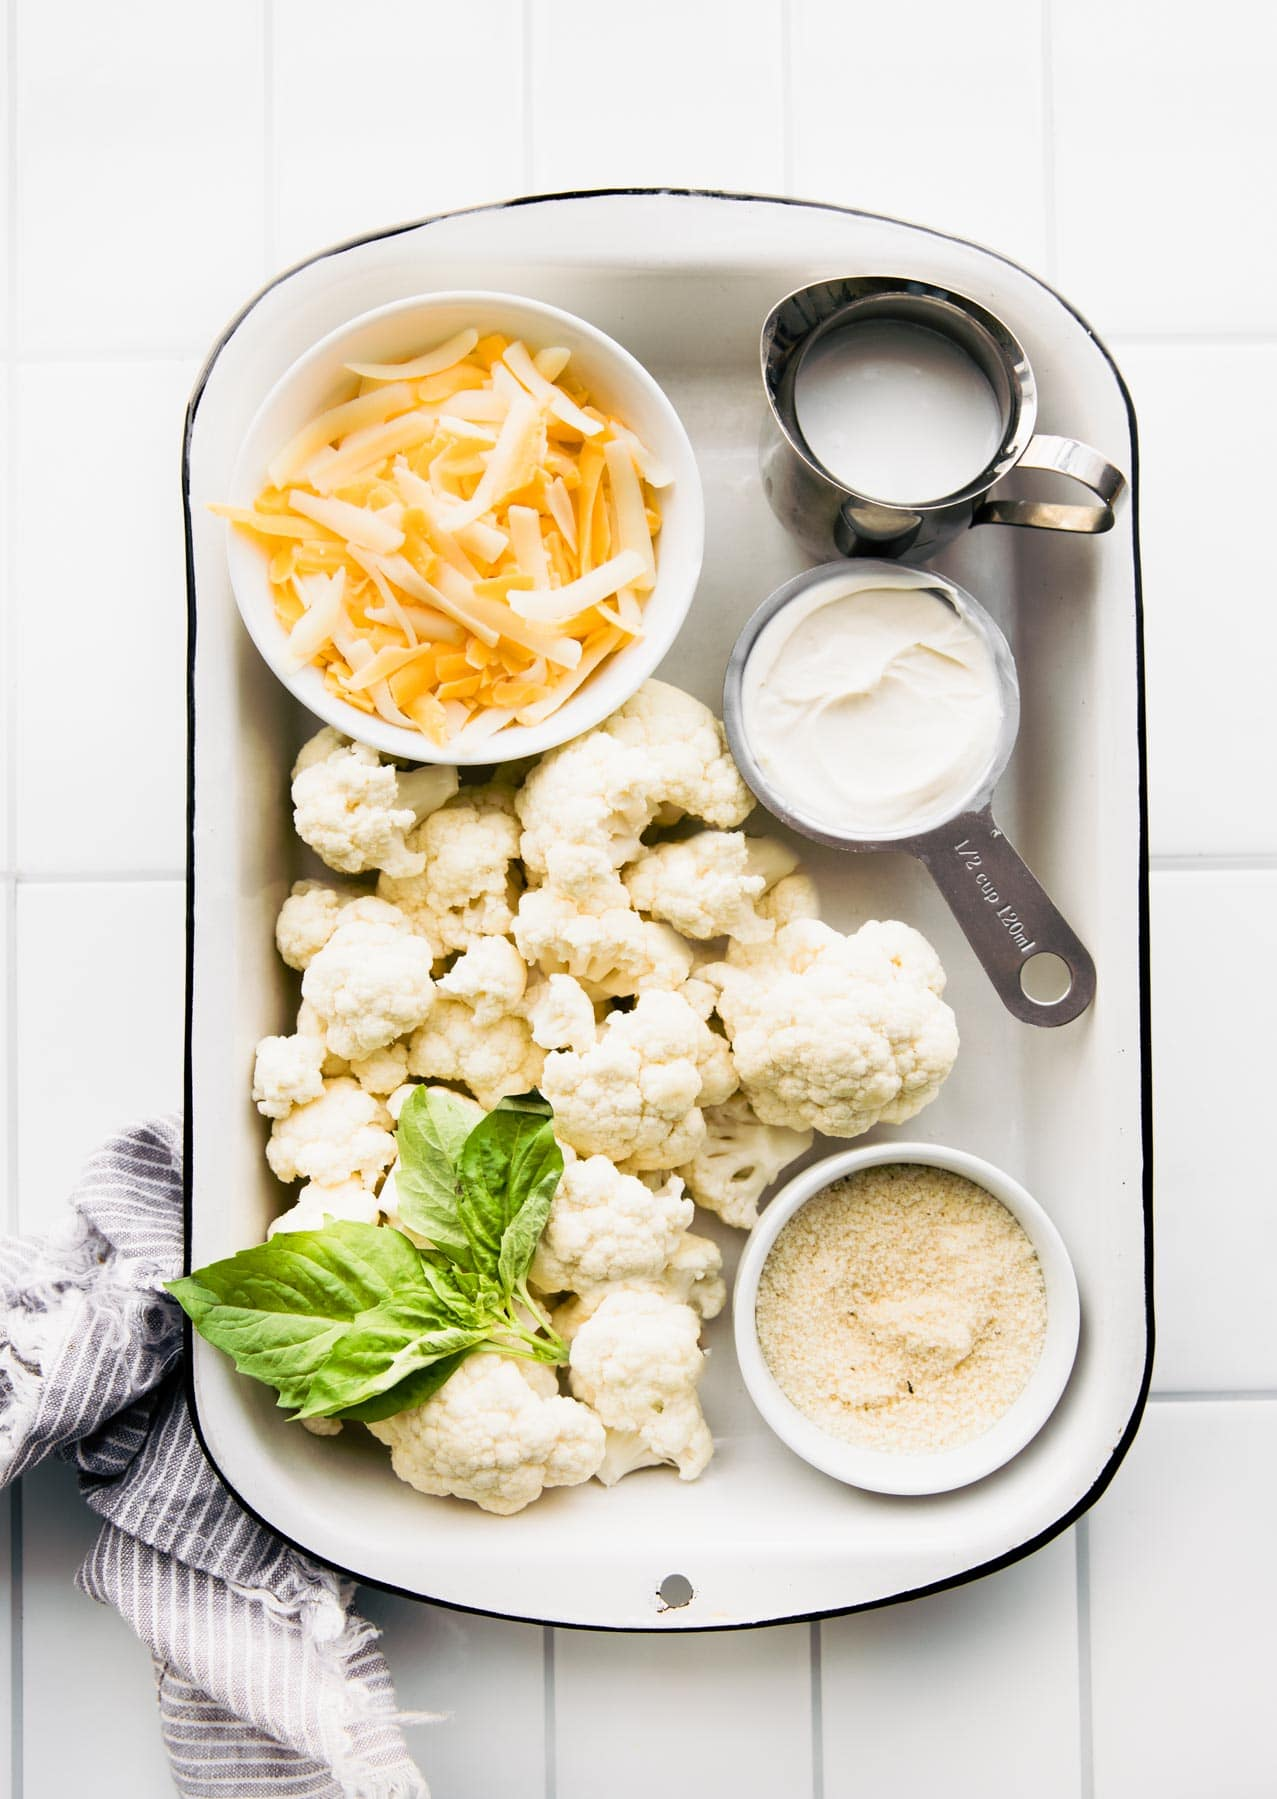 ingredients on a tray to make cauliflower mac and cheese recipe